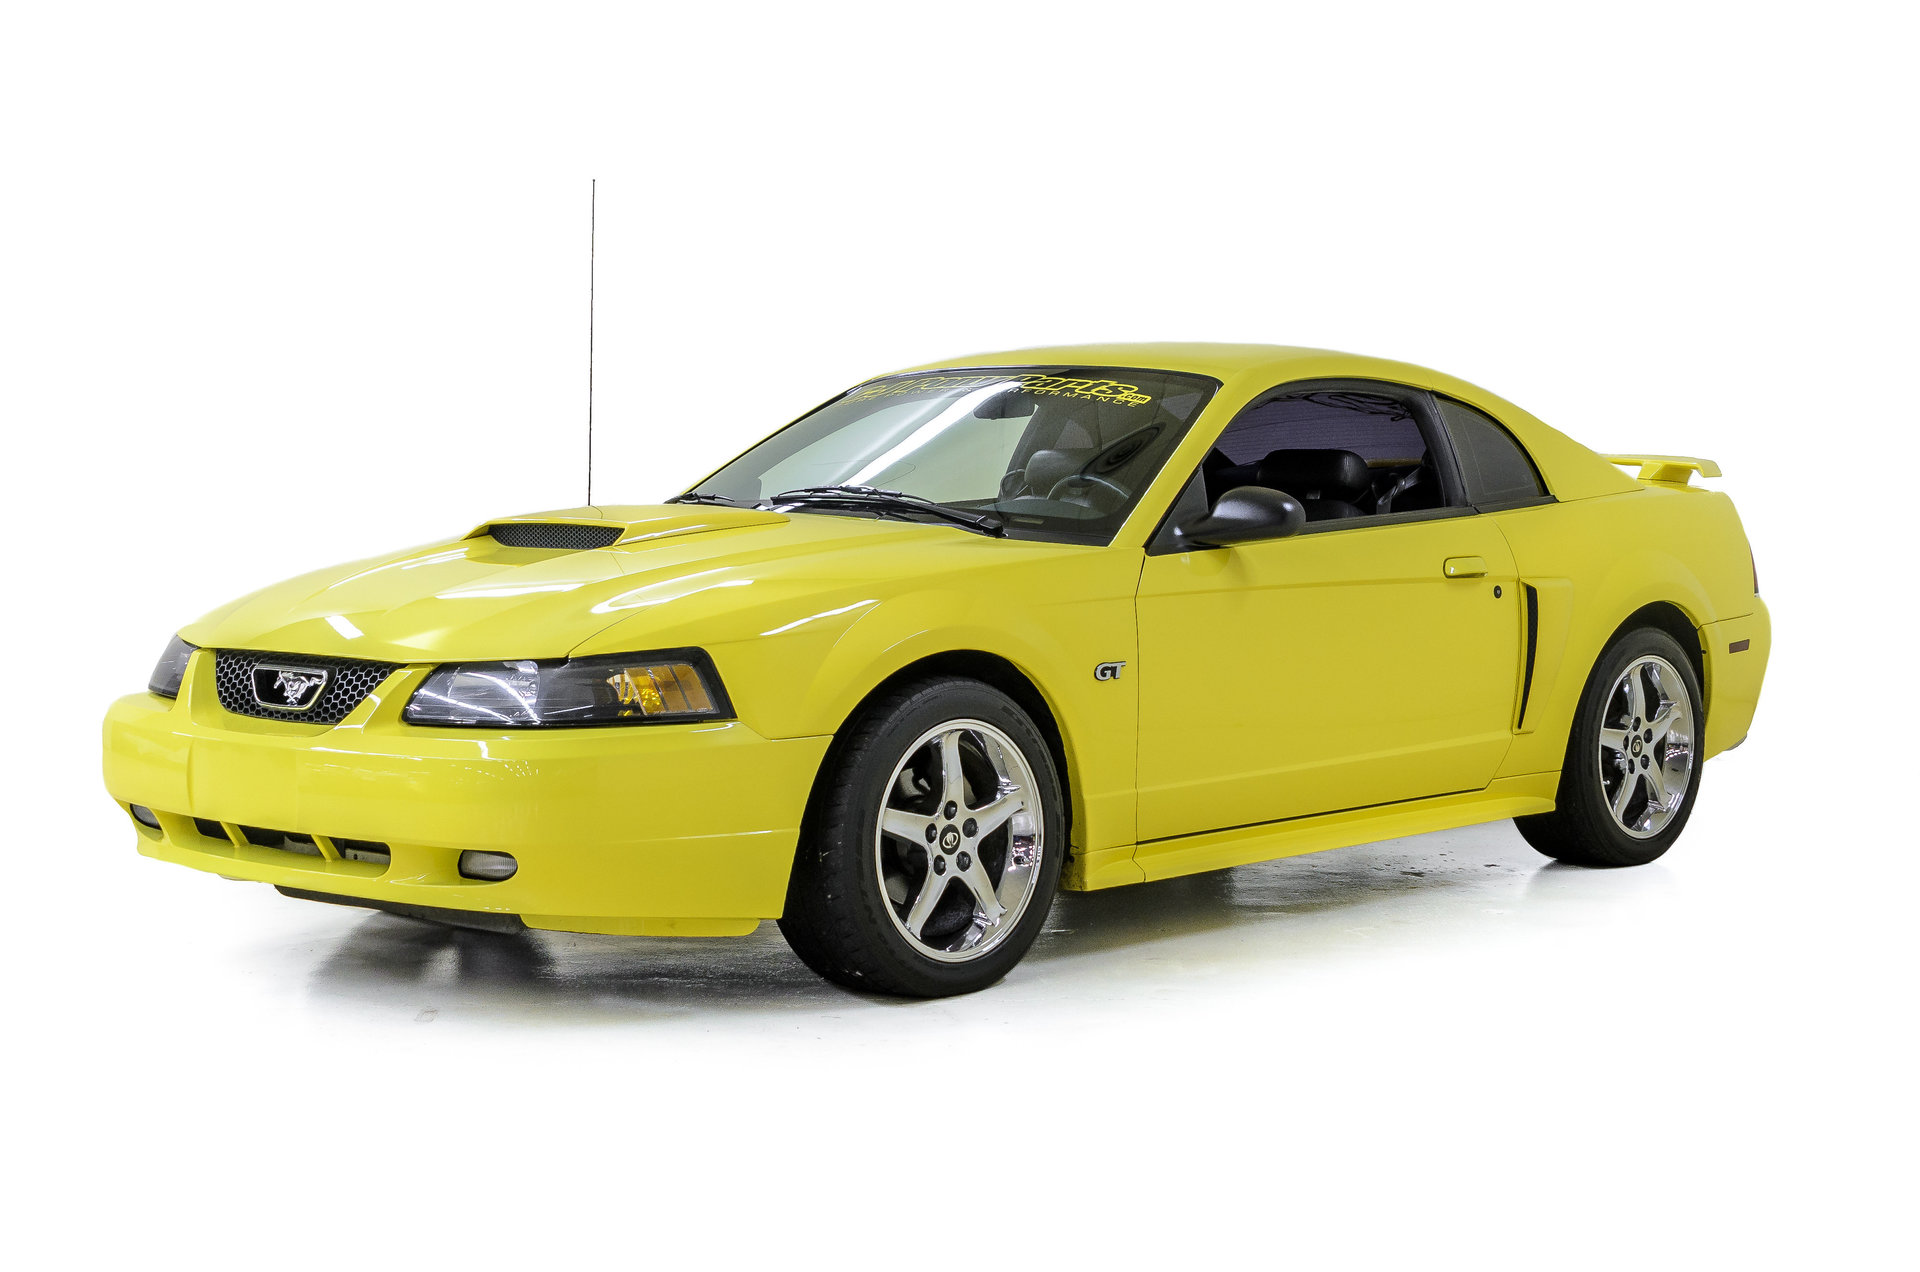 2001 ford mustang gt for sale 89230 mcg. Black Bedroom Furniture Sets. Home Design Ideas